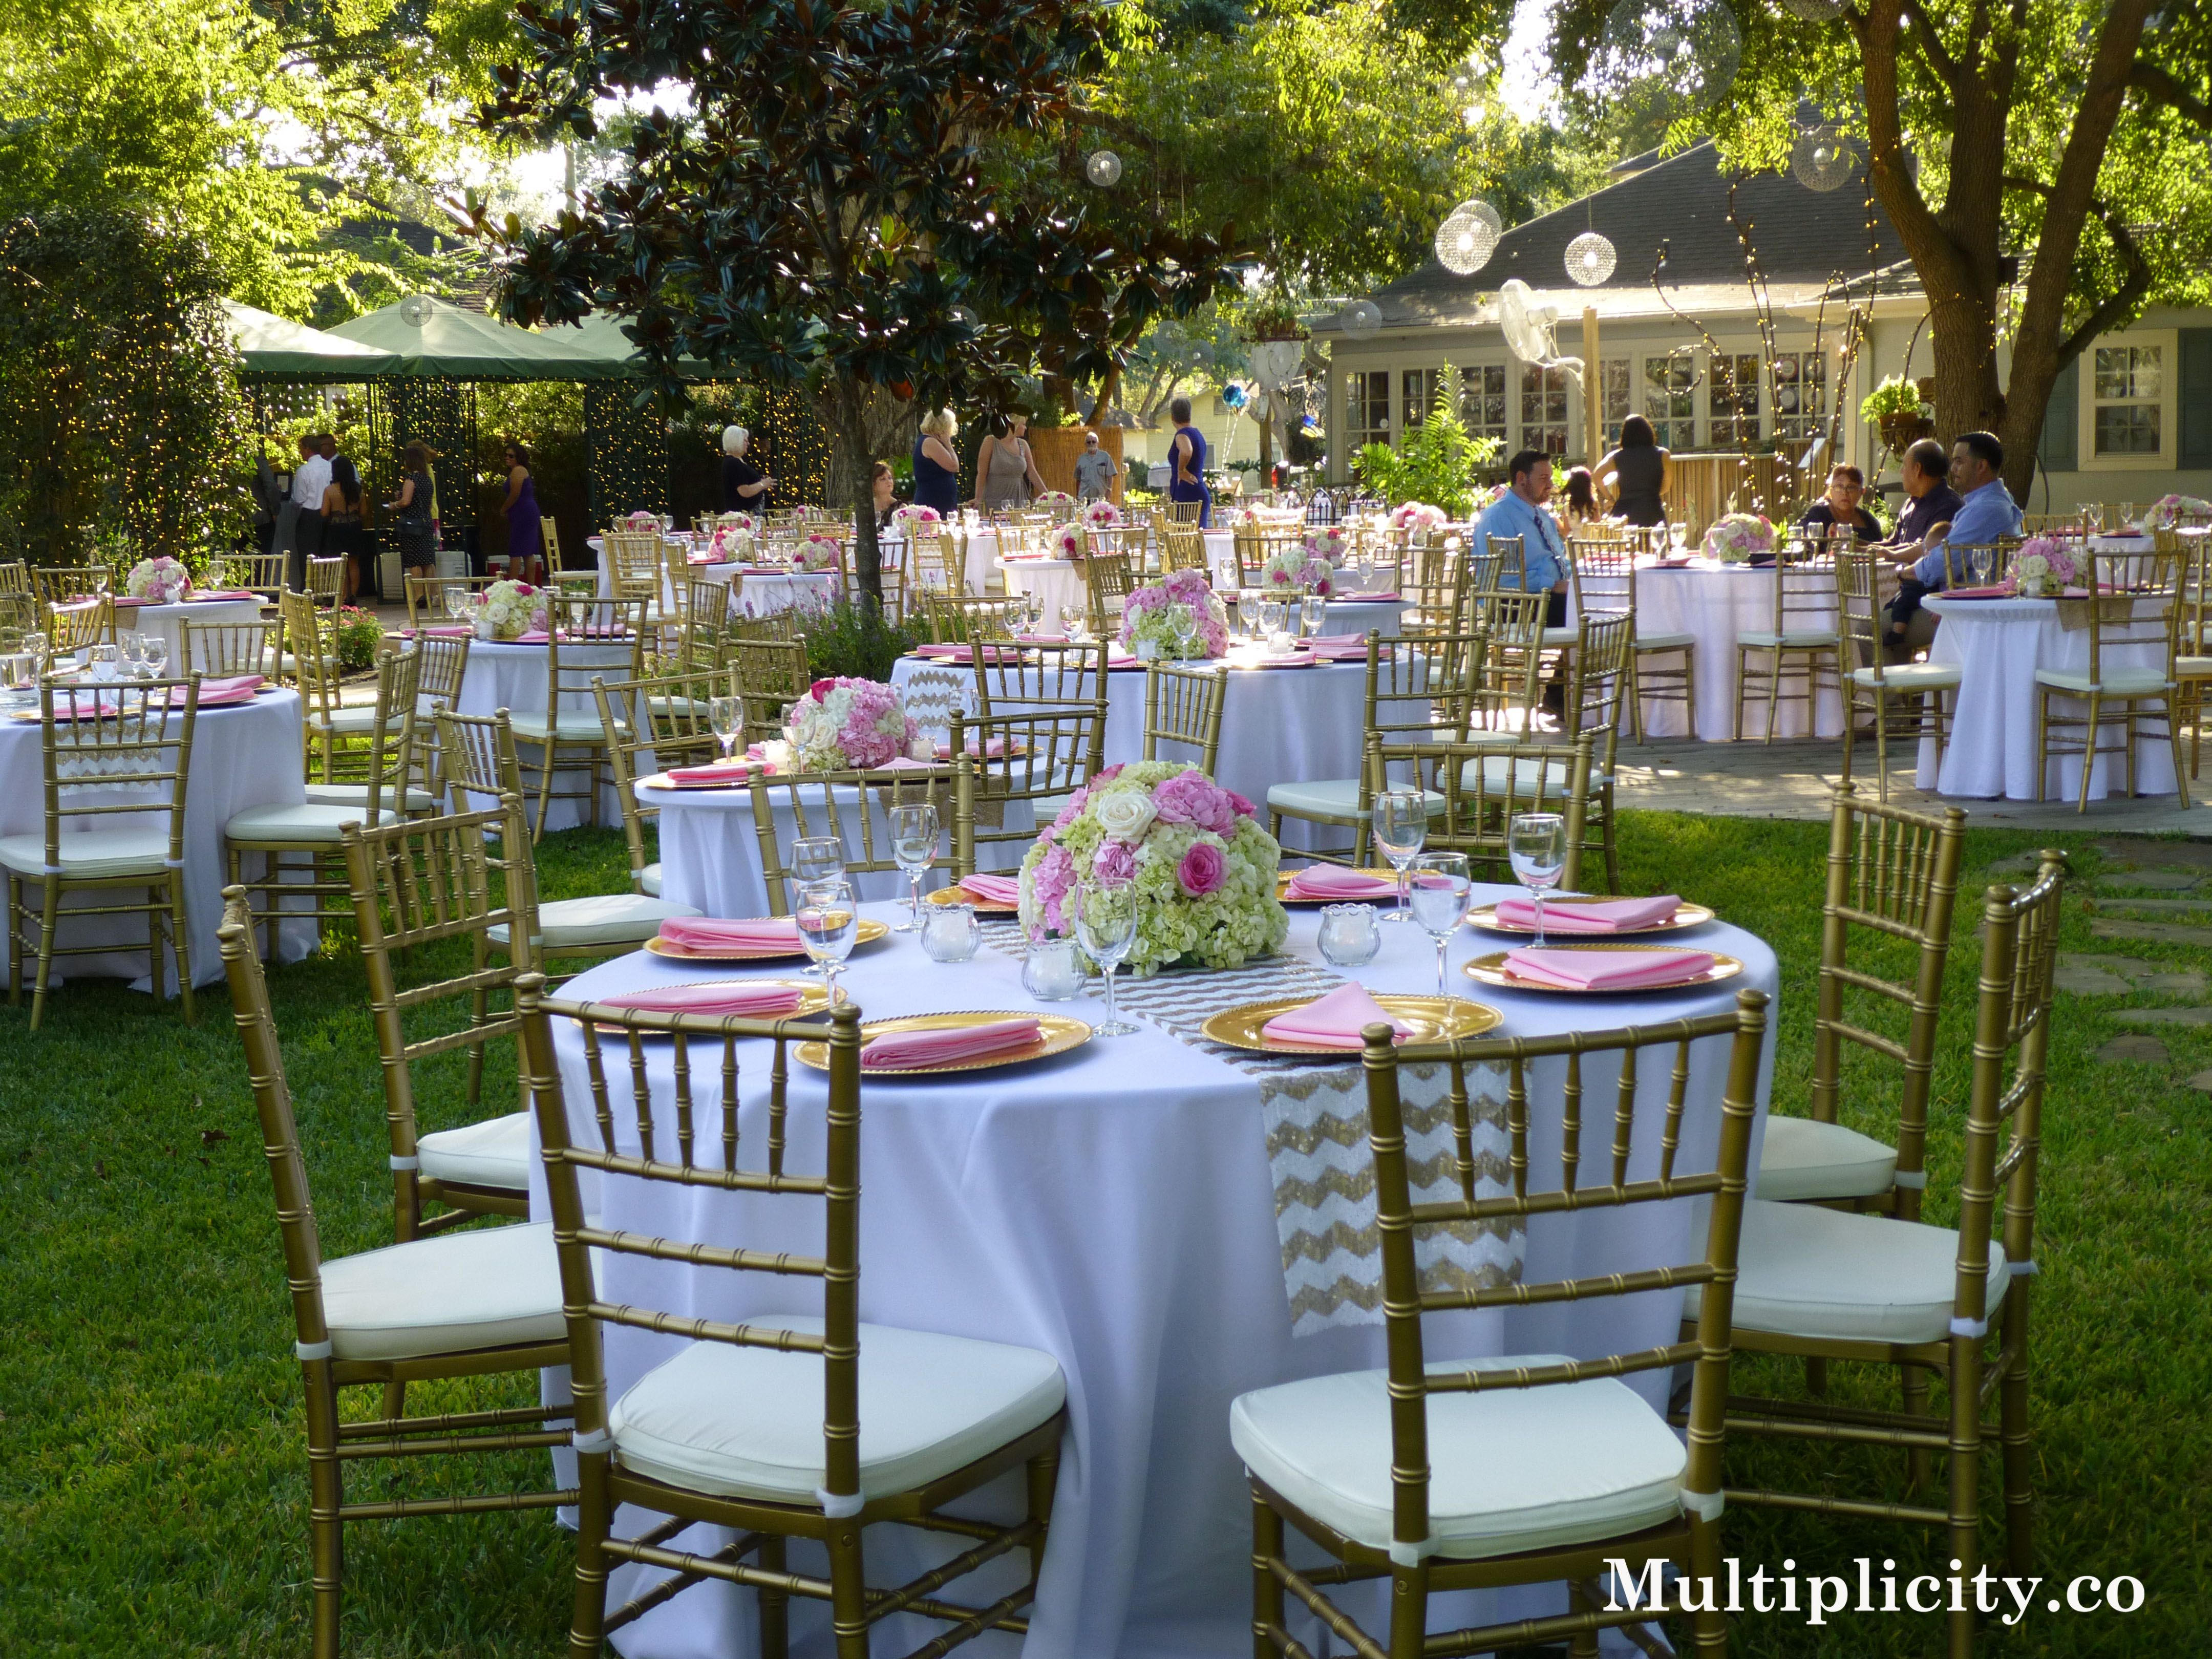 Multiplicity Outdoor Garden Venue Wedding Garden Venue